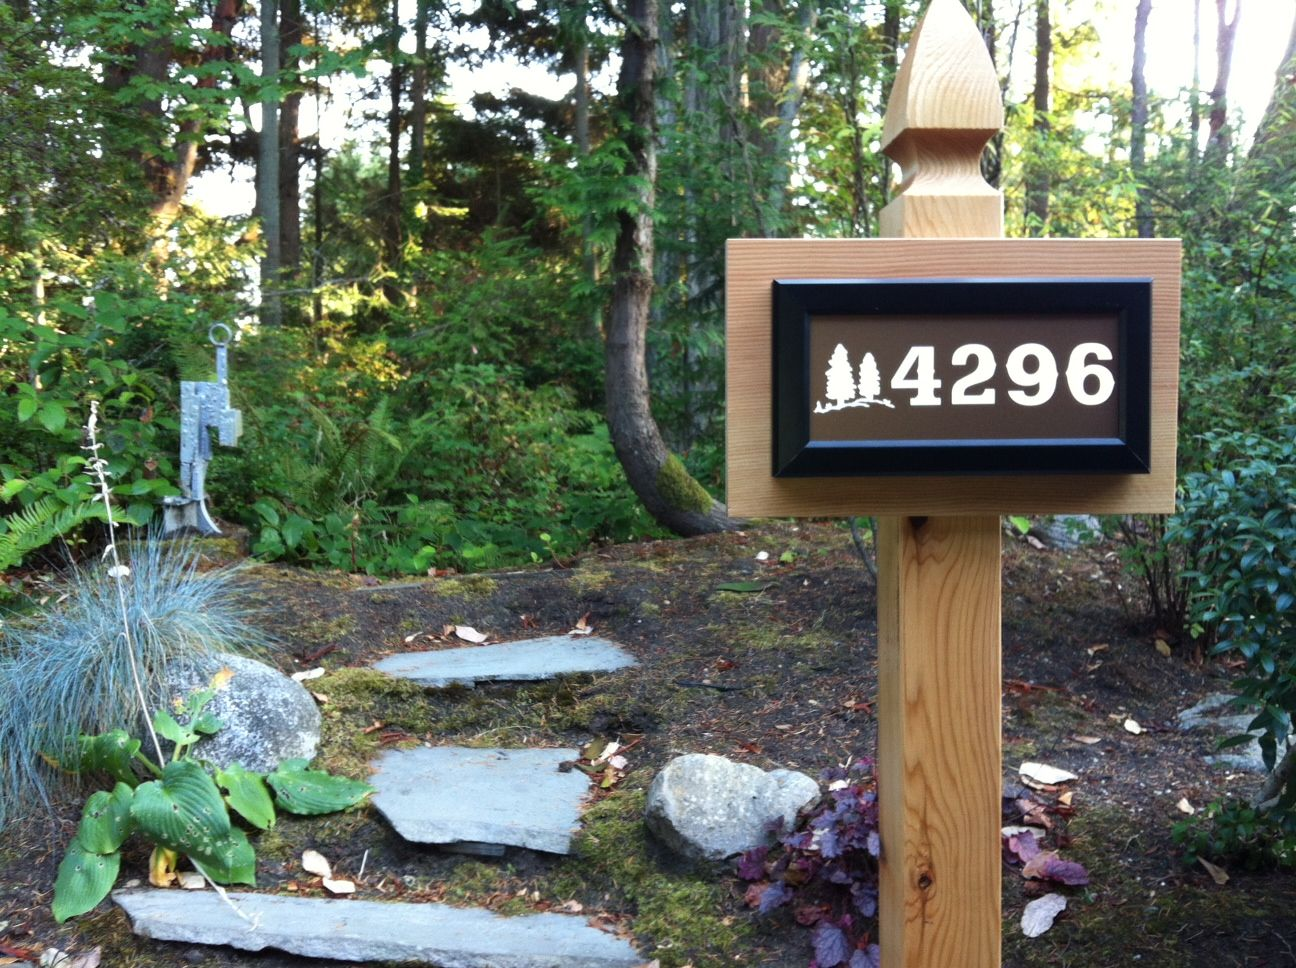 Address led weatherproof lighted signs can be mounted on a